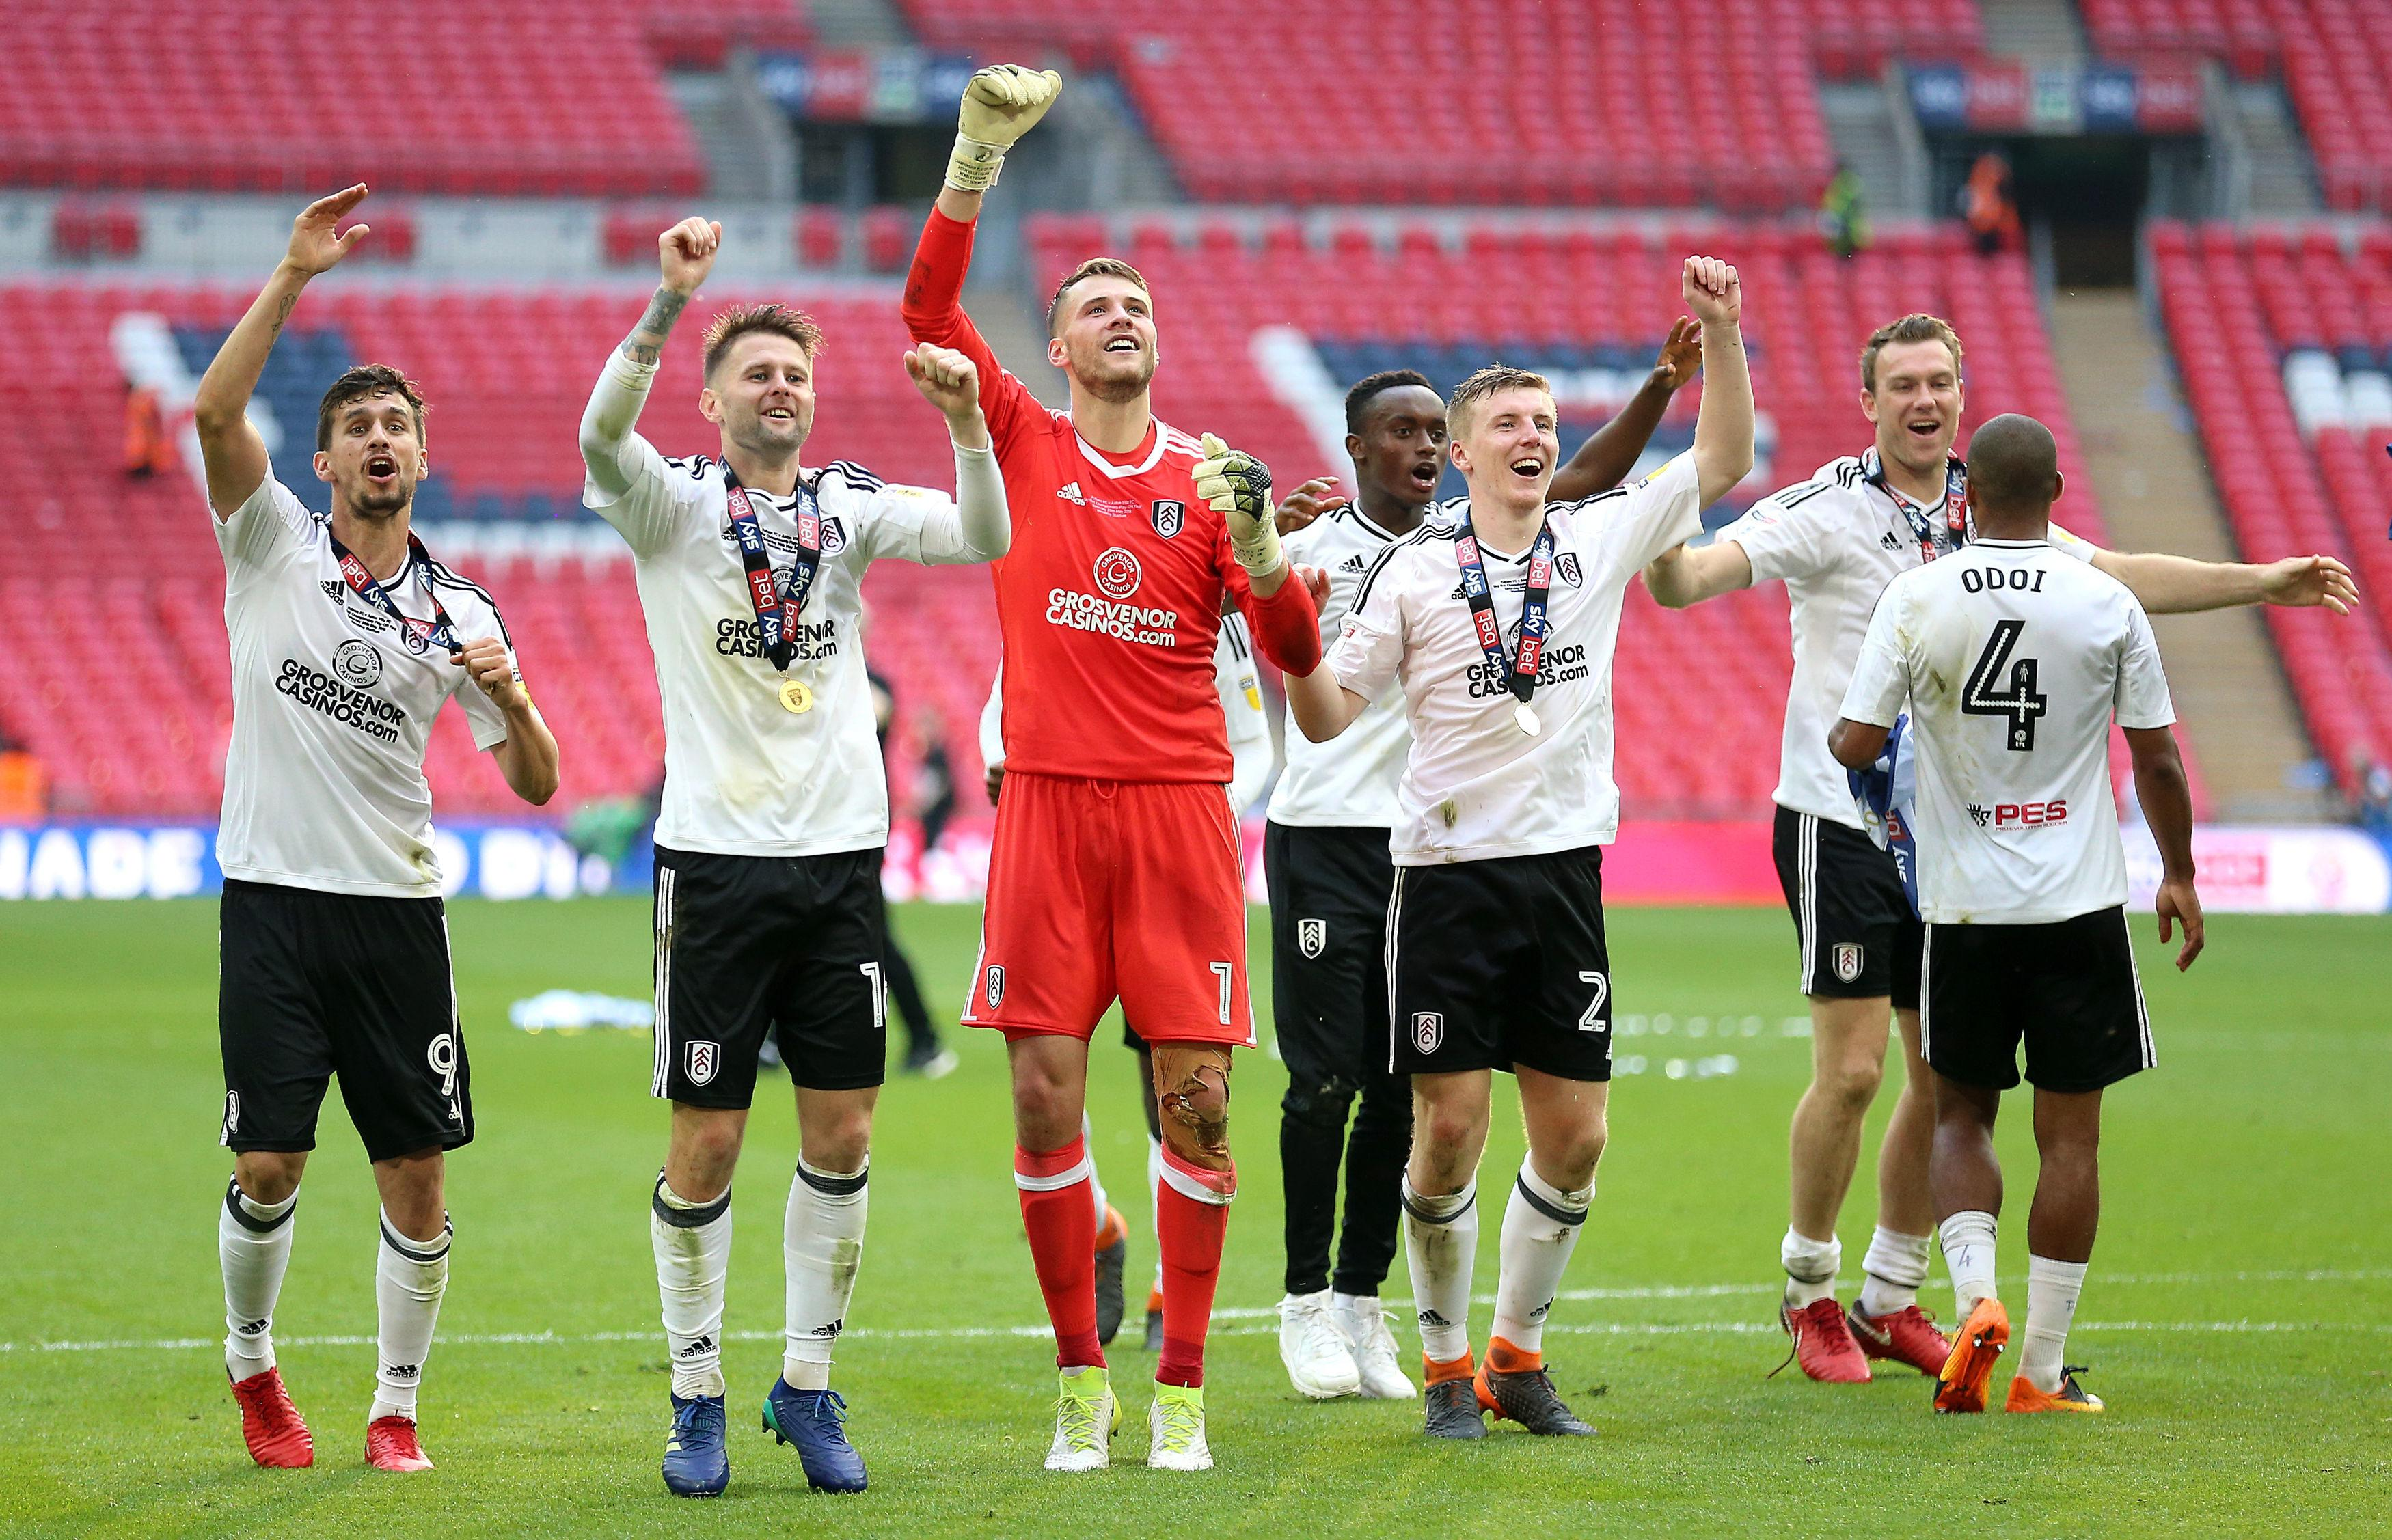 Targett helped Fulham to clinch promotion back to the Premier League